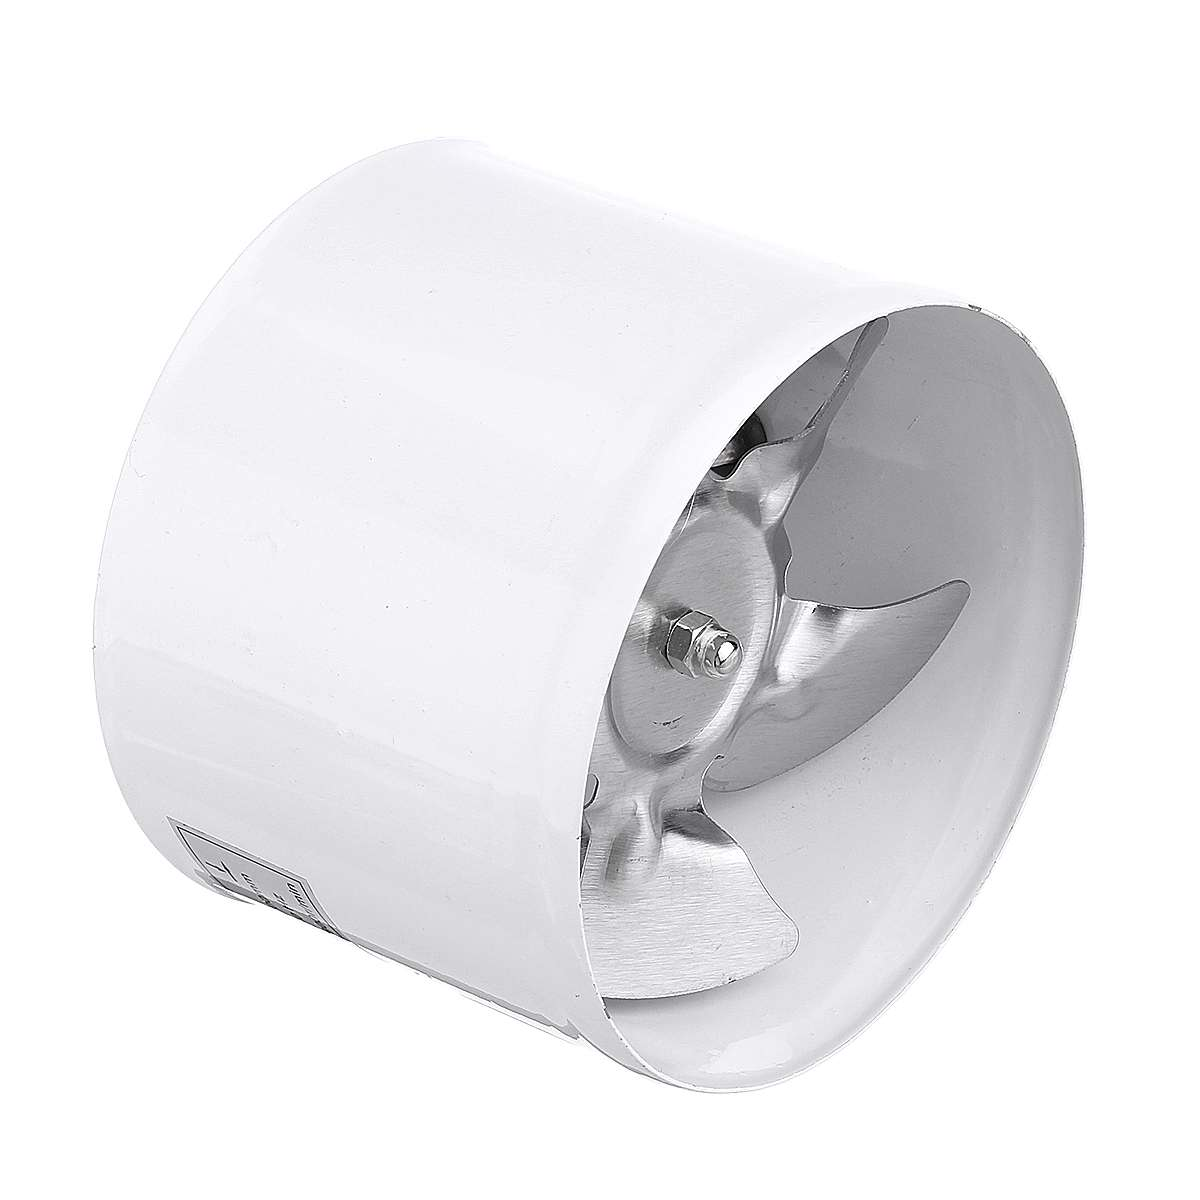 4 inch Round <font><b>Duct</b></font> <font><b>Fan</b></font> Wall Toilets Window Exhaust <font><b>Fan</b></font> Ventilation Quiet Industrial Kitchen Exhaust Ventilate Air Vent <font><b>Fan</b></font> <font><b>100mm</b></font> image